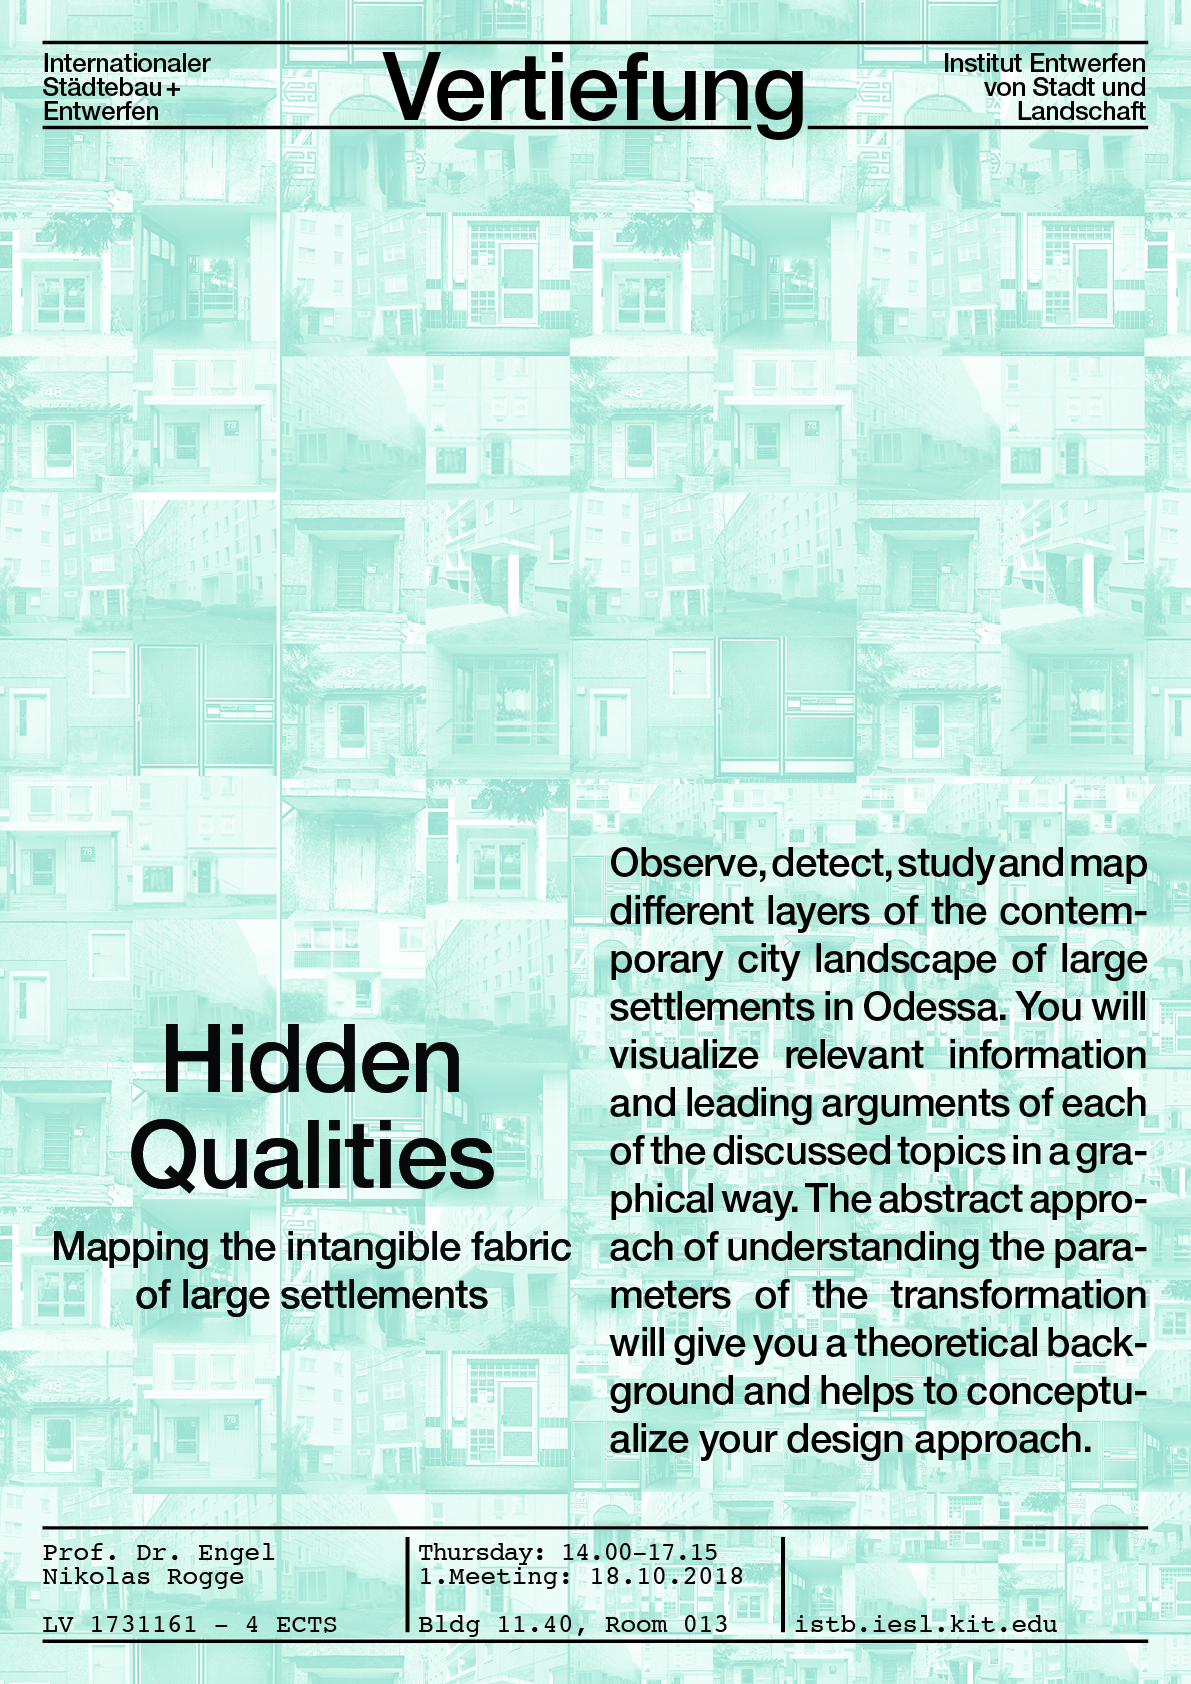 Vertiefung: Hidden Qualities - Mapping the intangible fabric of large settlements